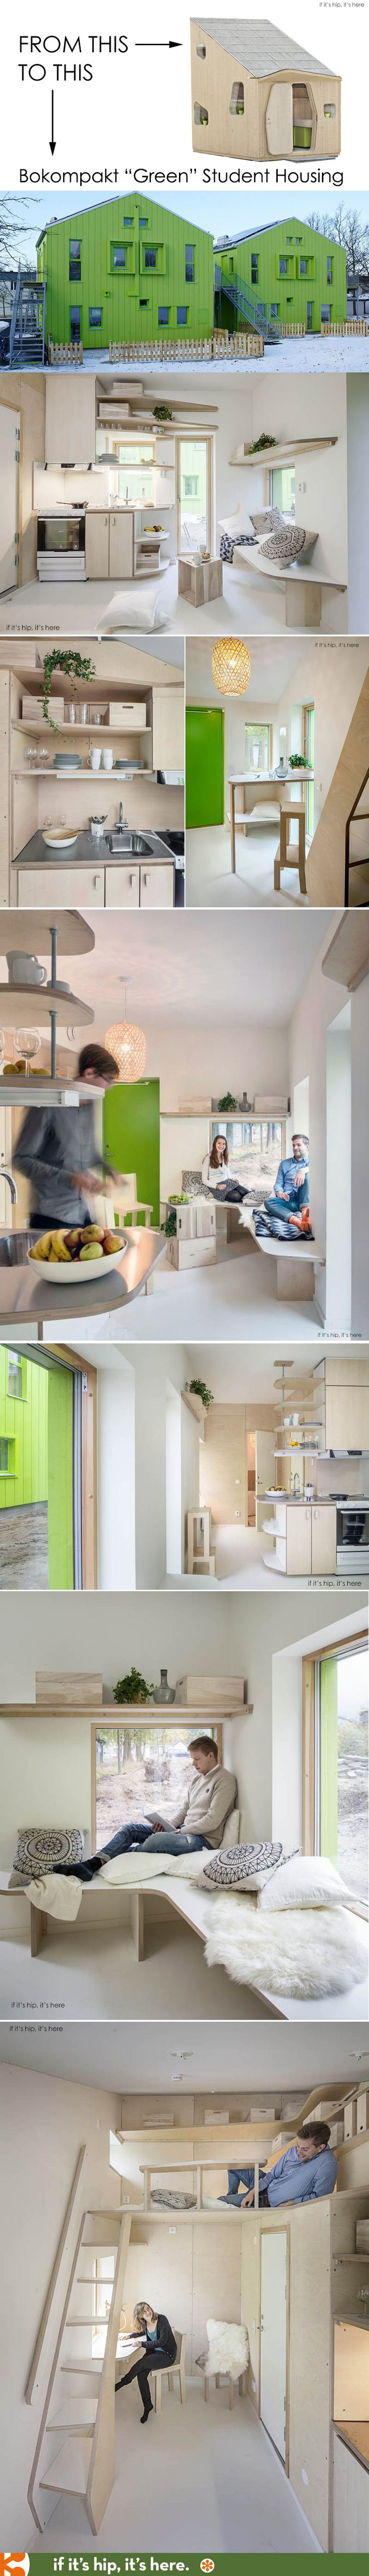 Elegant Bokompakt Student Housing Completed In Oct 2014 Are Modern, Eco Friendly  Apartments For Lund University Students That Began As Tengbomu0027s 10 Sqm  Micro House. Awesome Ideas